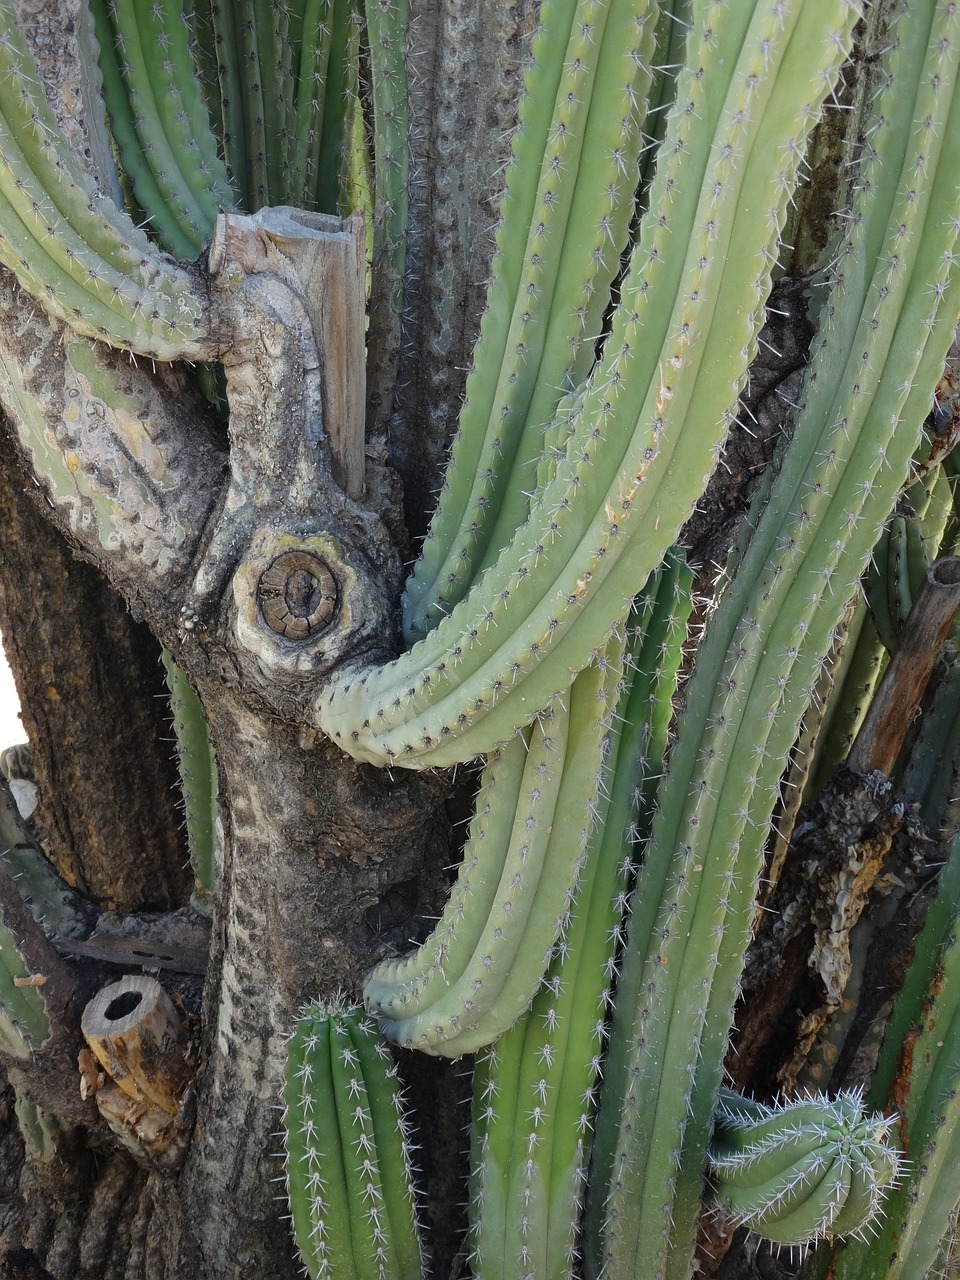 CACTUS PRICKLY DESERT PLANT FREE PICTURES FREE PHOTO FROM